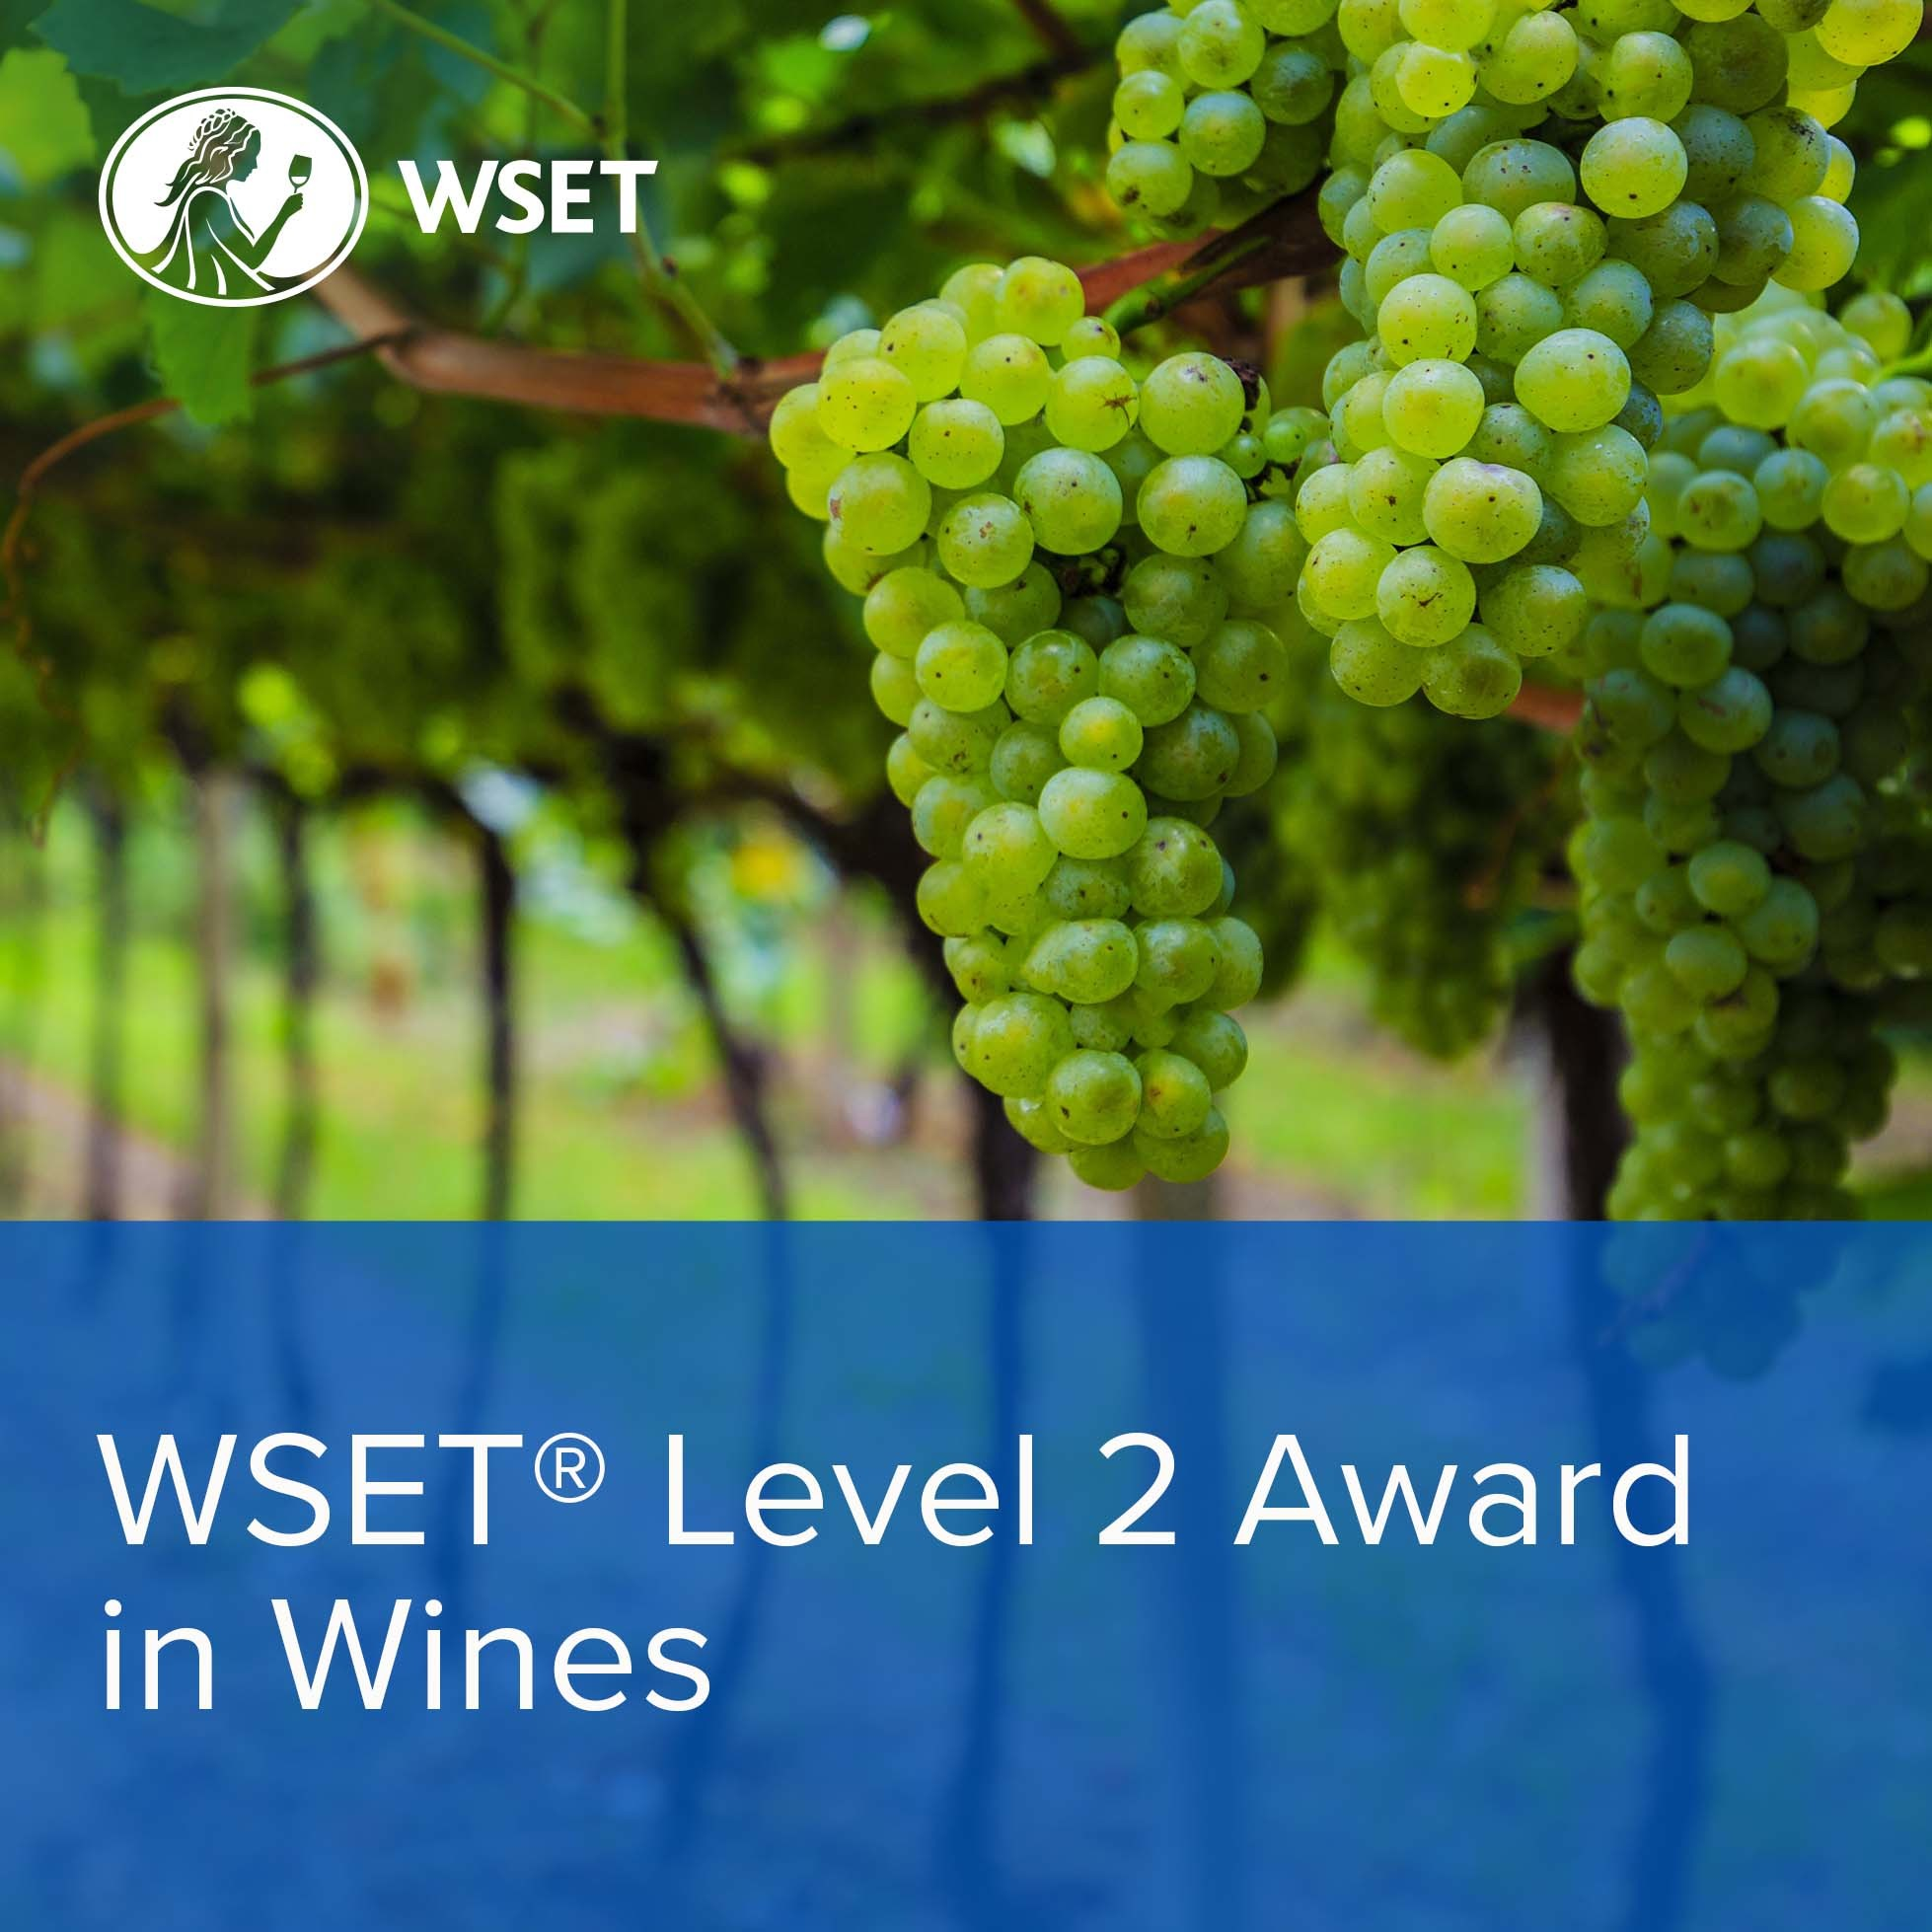 WSET Level 2 Award in Wines: Sunday Format (Classroom)